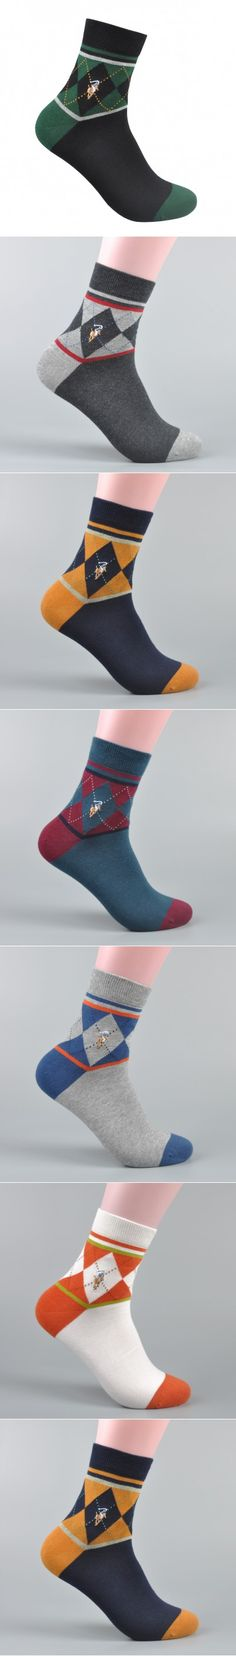 """Mesh Men Adult Warm Socks Party Simply Organic Tartan Ankle """", """" Plaid Organic Ankle Elastic Scrunch Male Adults Fitted Simply Cotton Slip On Warm Athletes Striped Popular Tartan Silky Journeys Non Slip Fishnet Sock Bicycle Comfort."""